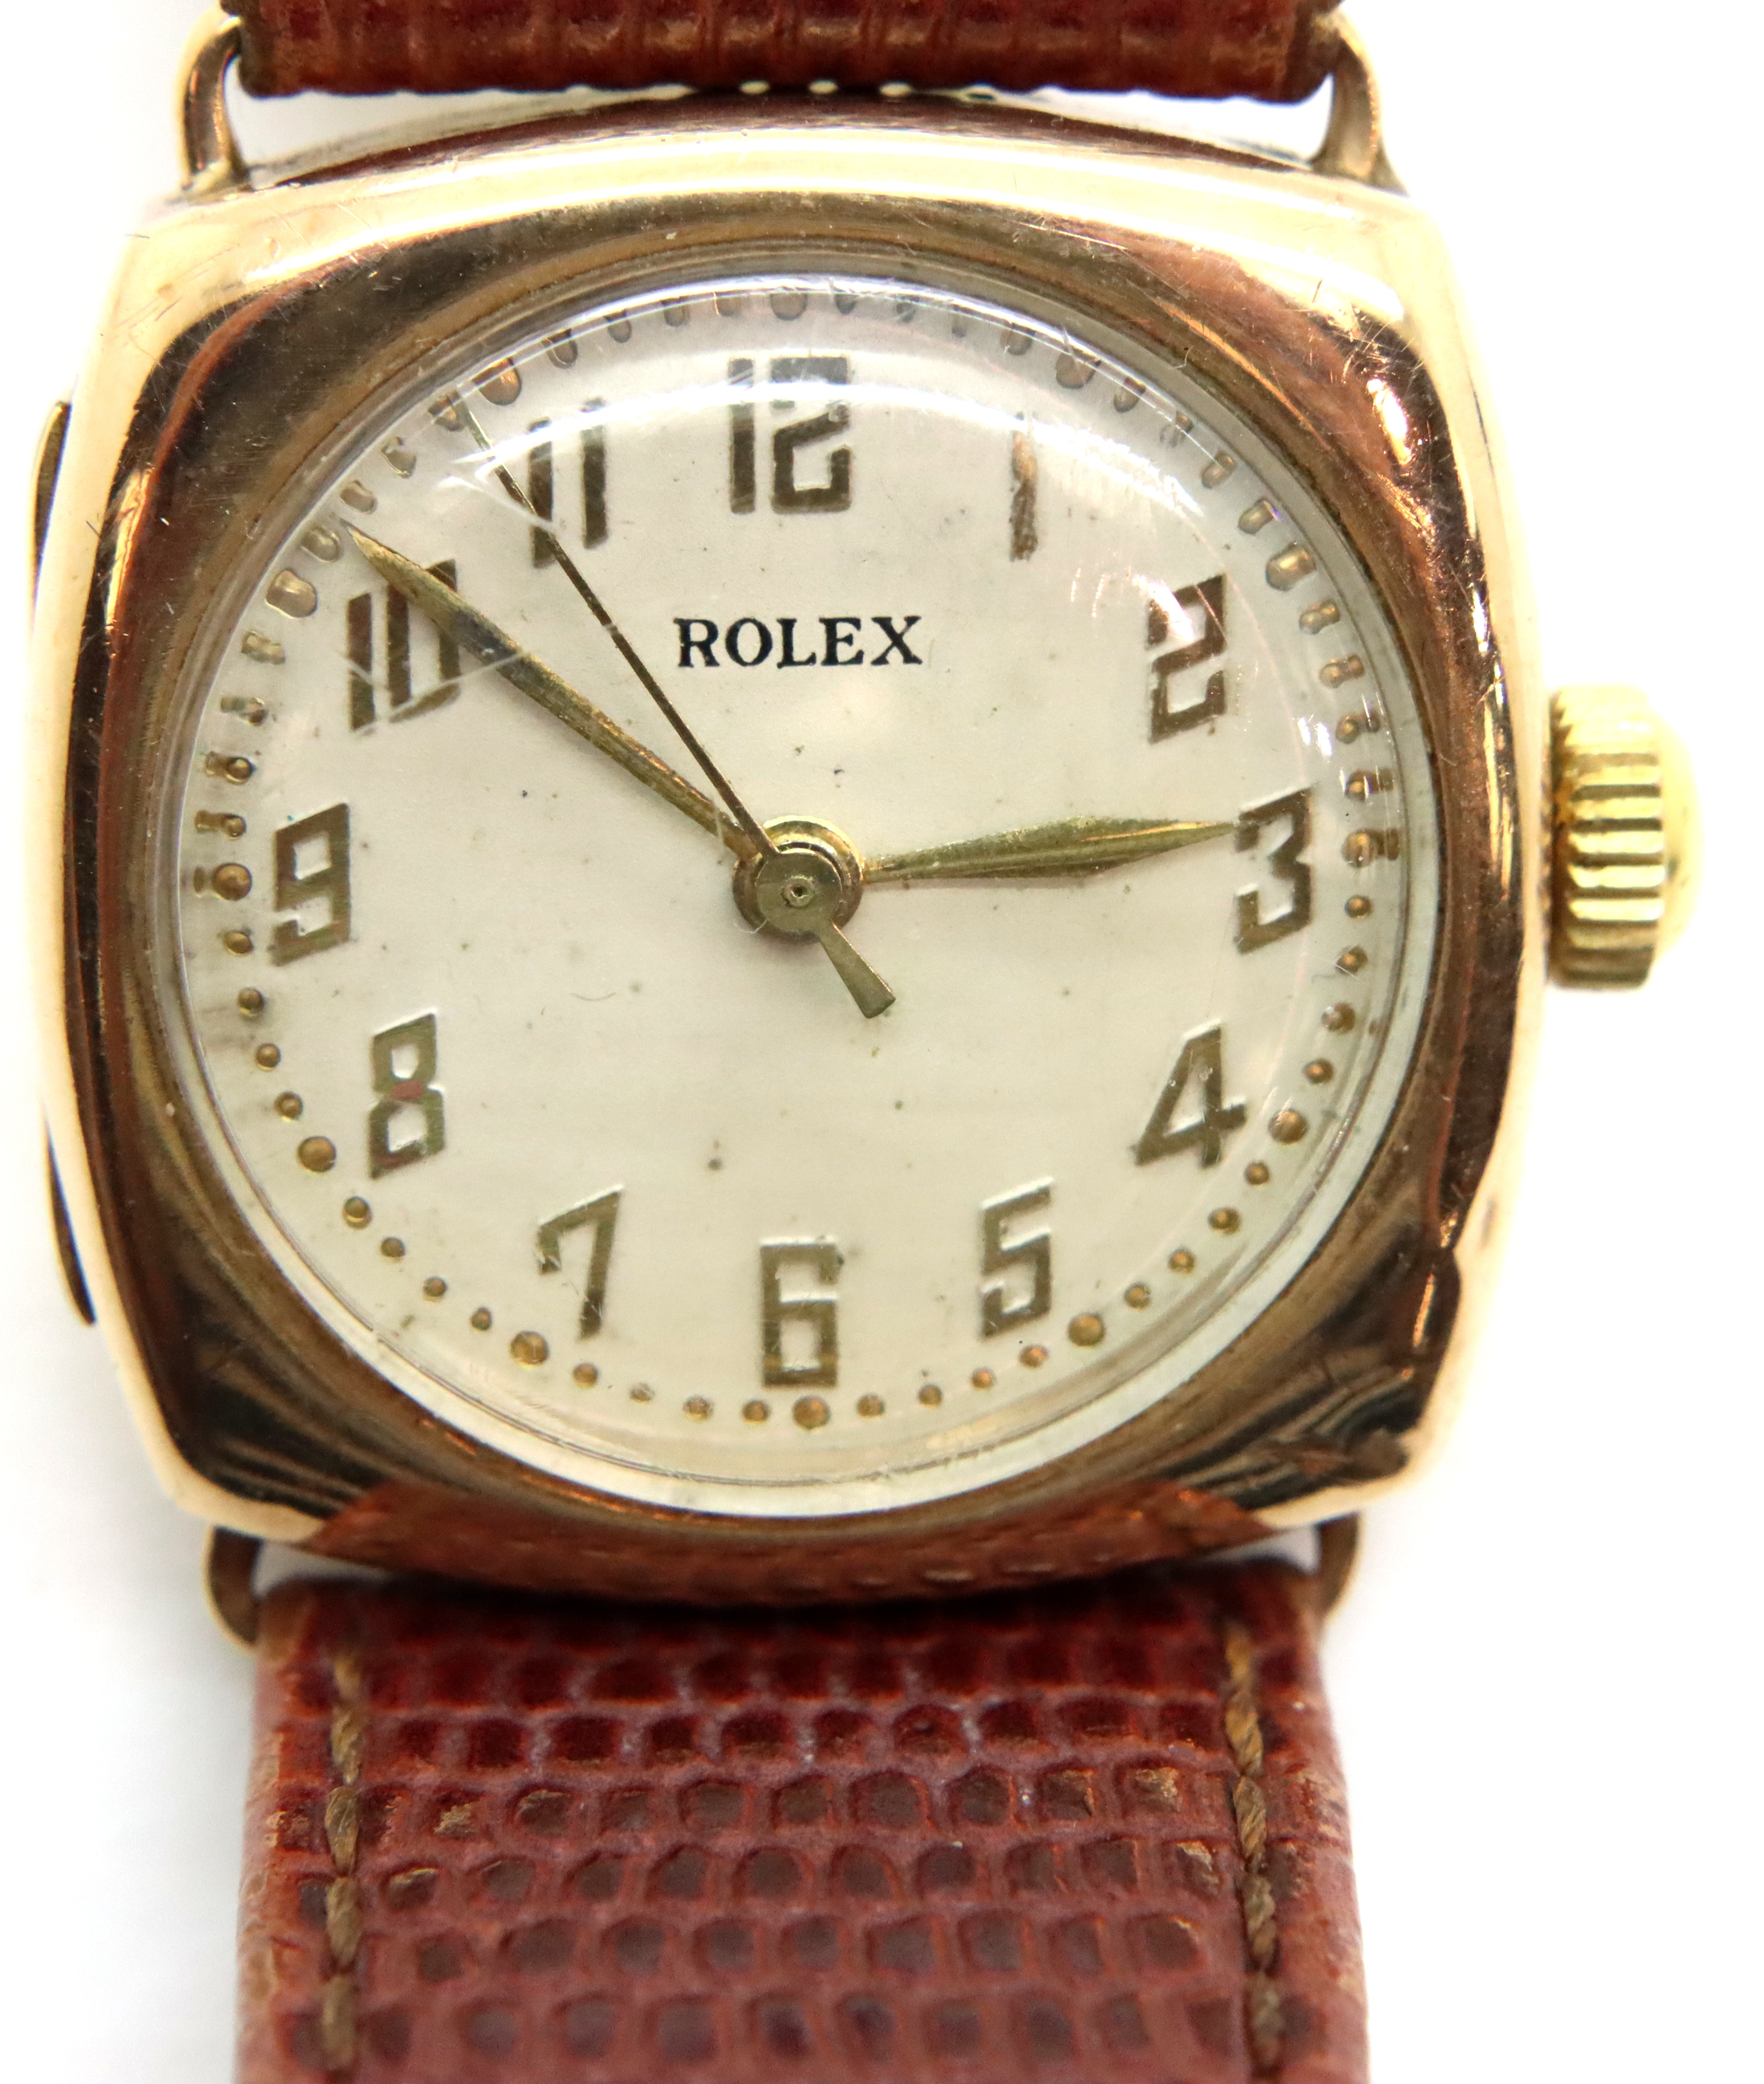 1950s 9ct gold Rolex wristwatch on leather strap in working order. P&P Group 1 (£14+VAT for the